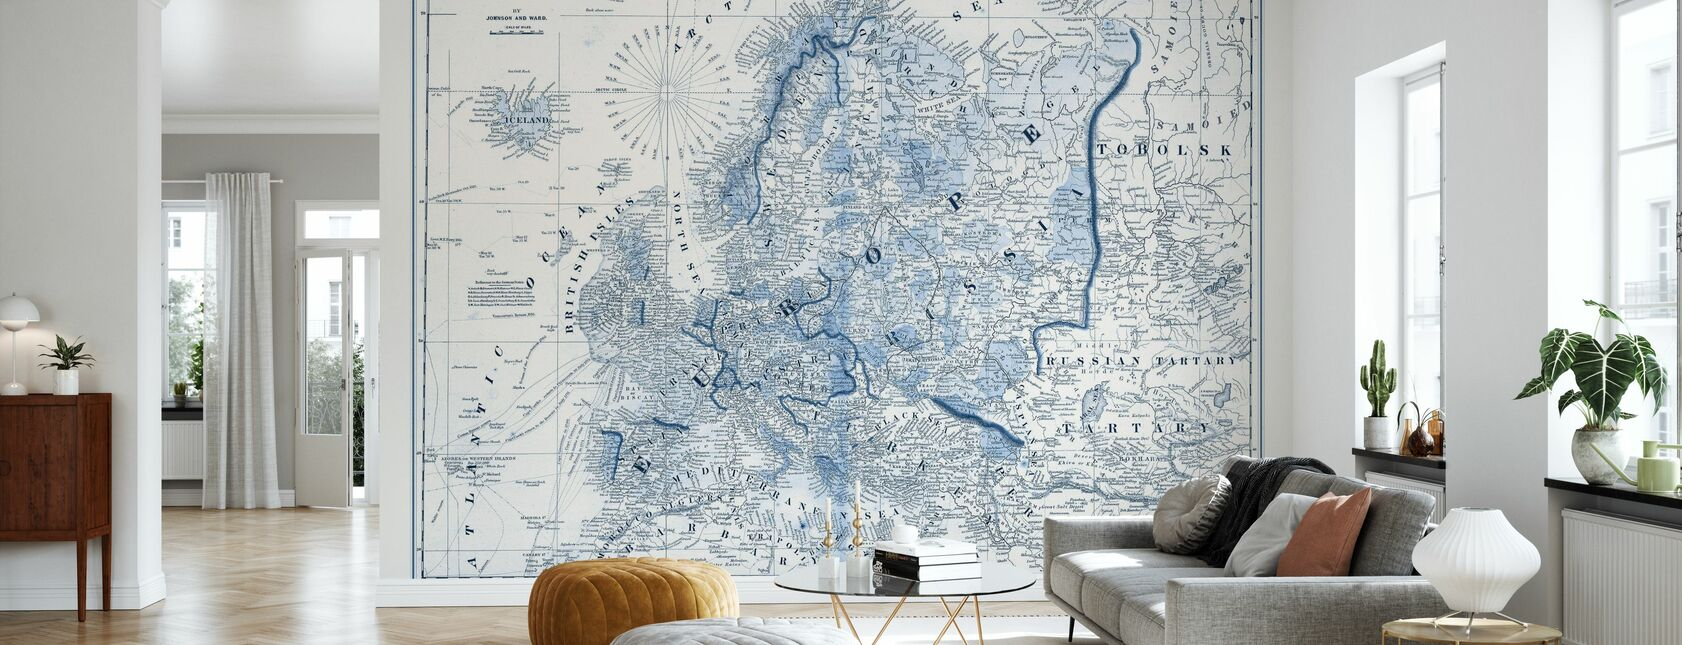 Europe in Shades of Blue - Wallpaper - Living Room